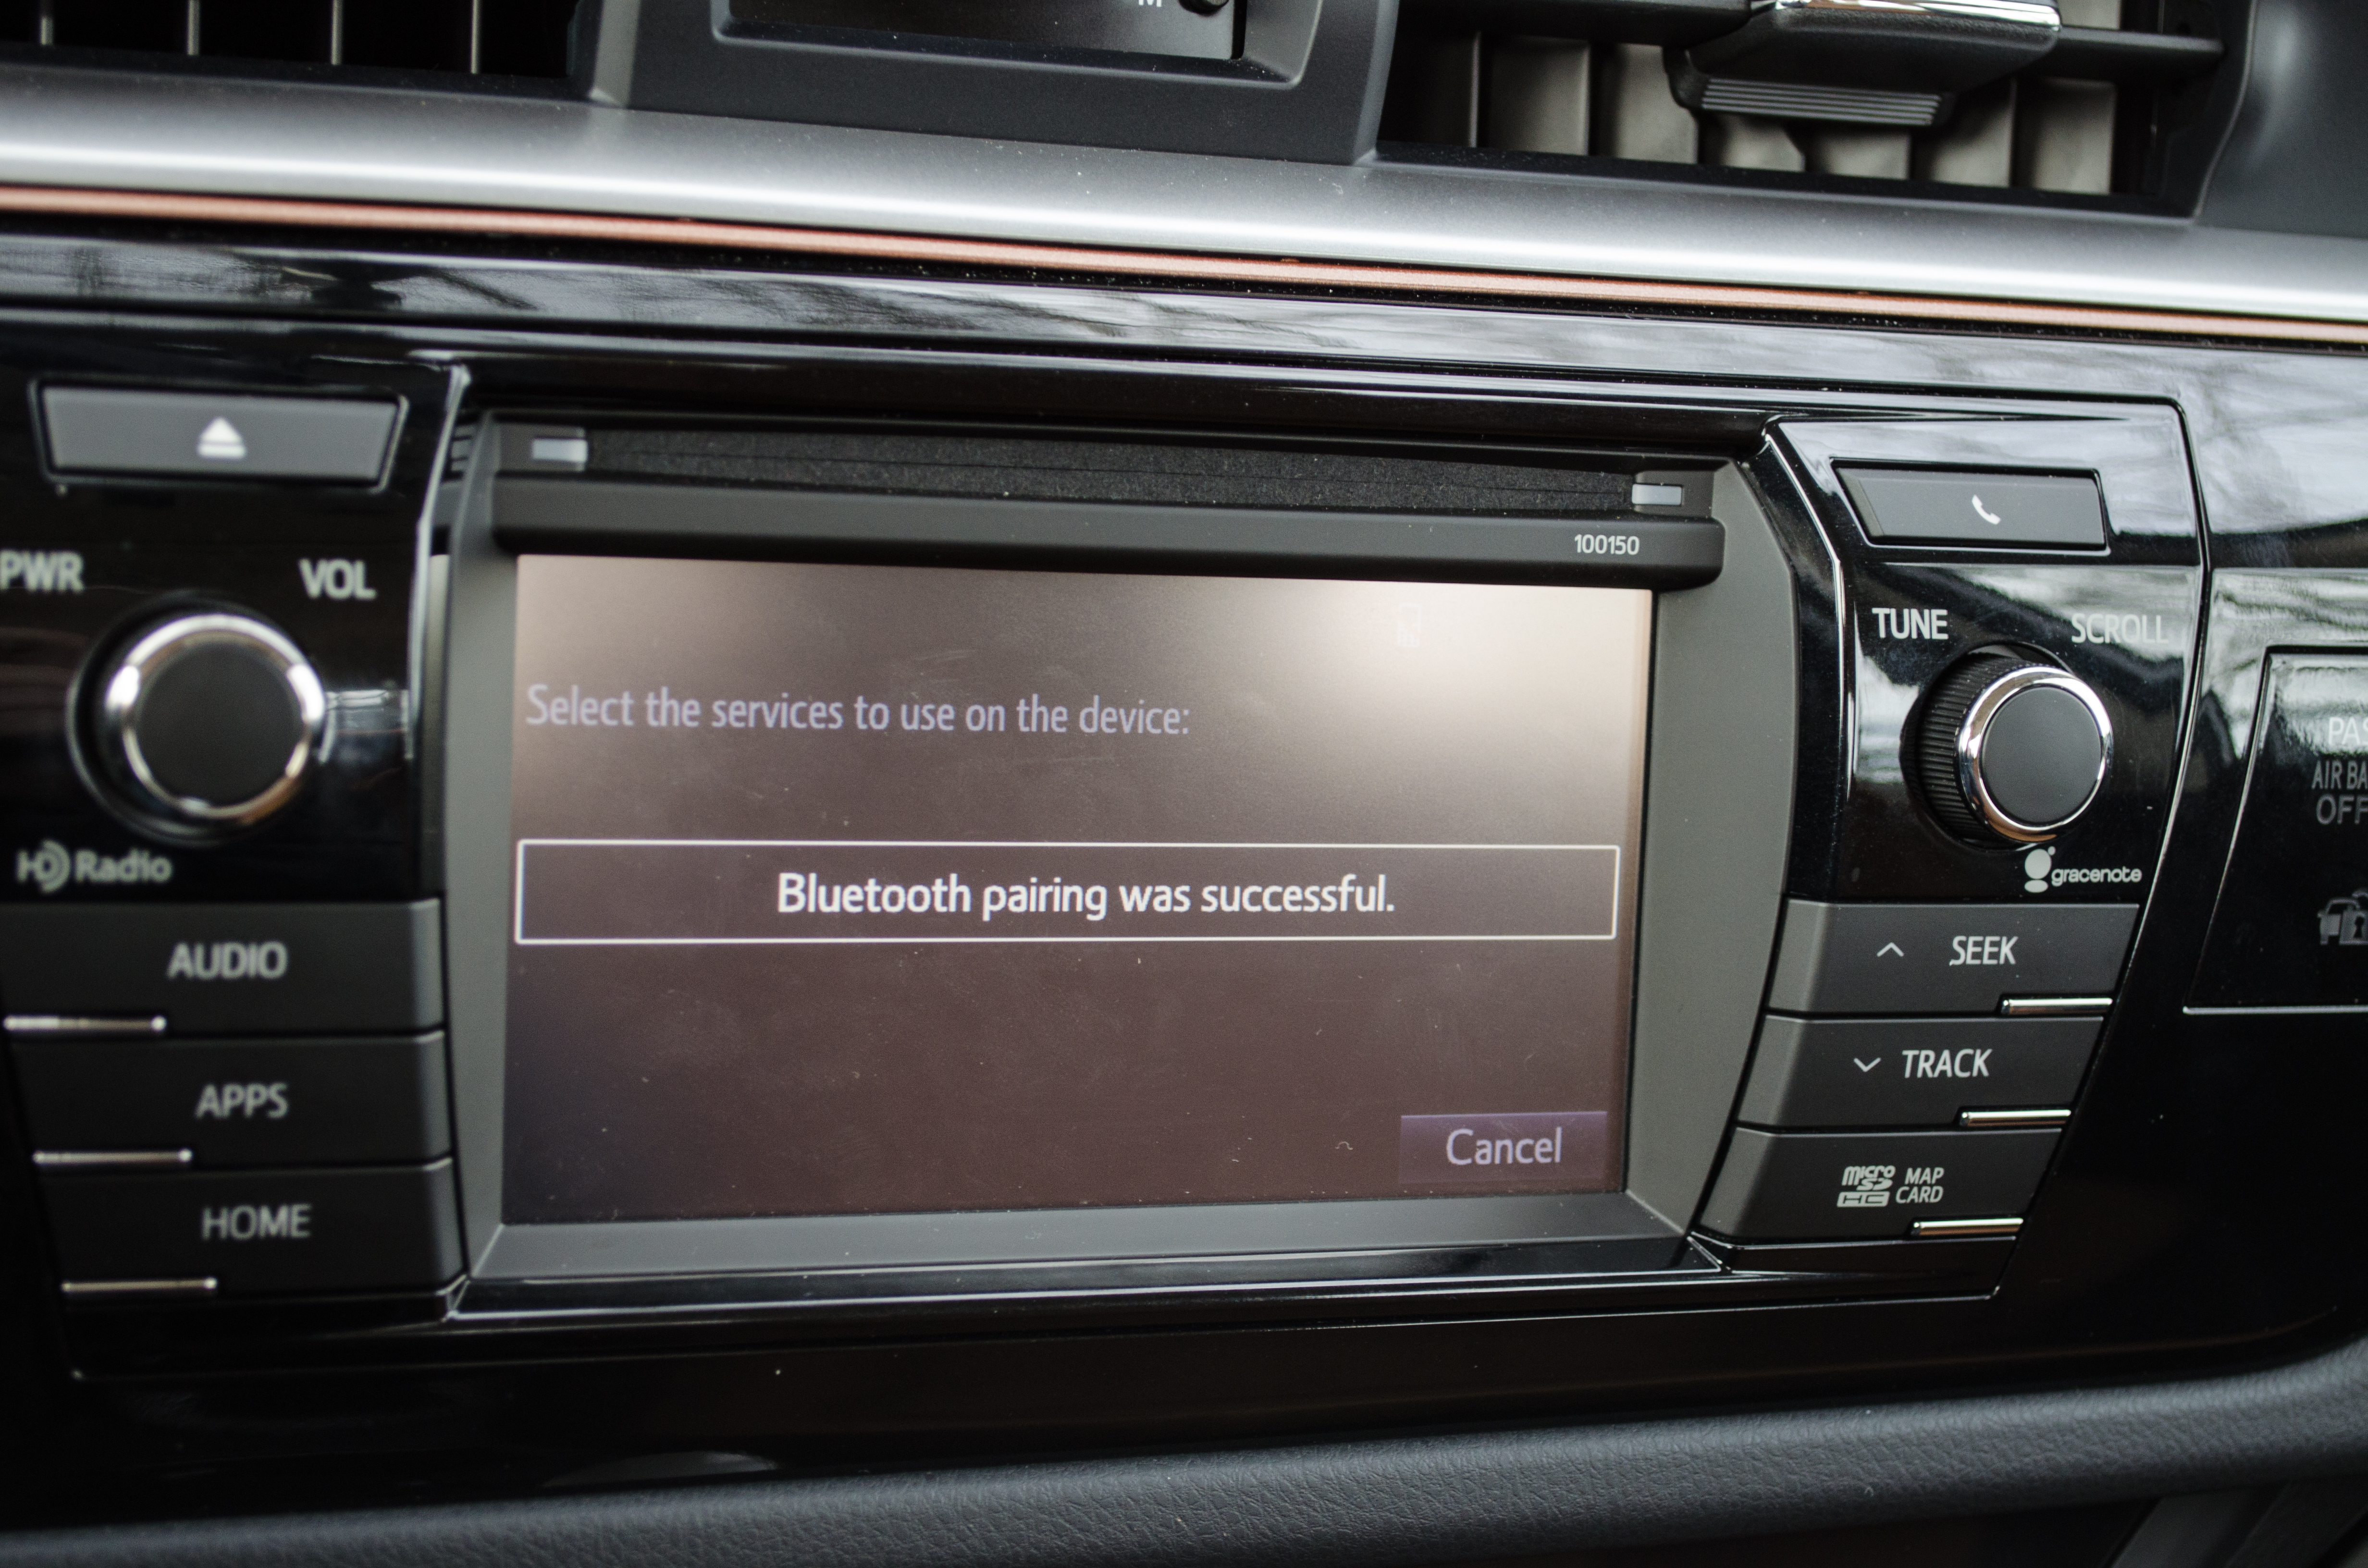 How To Connect An Iphone To Toyota Entune Motor Review